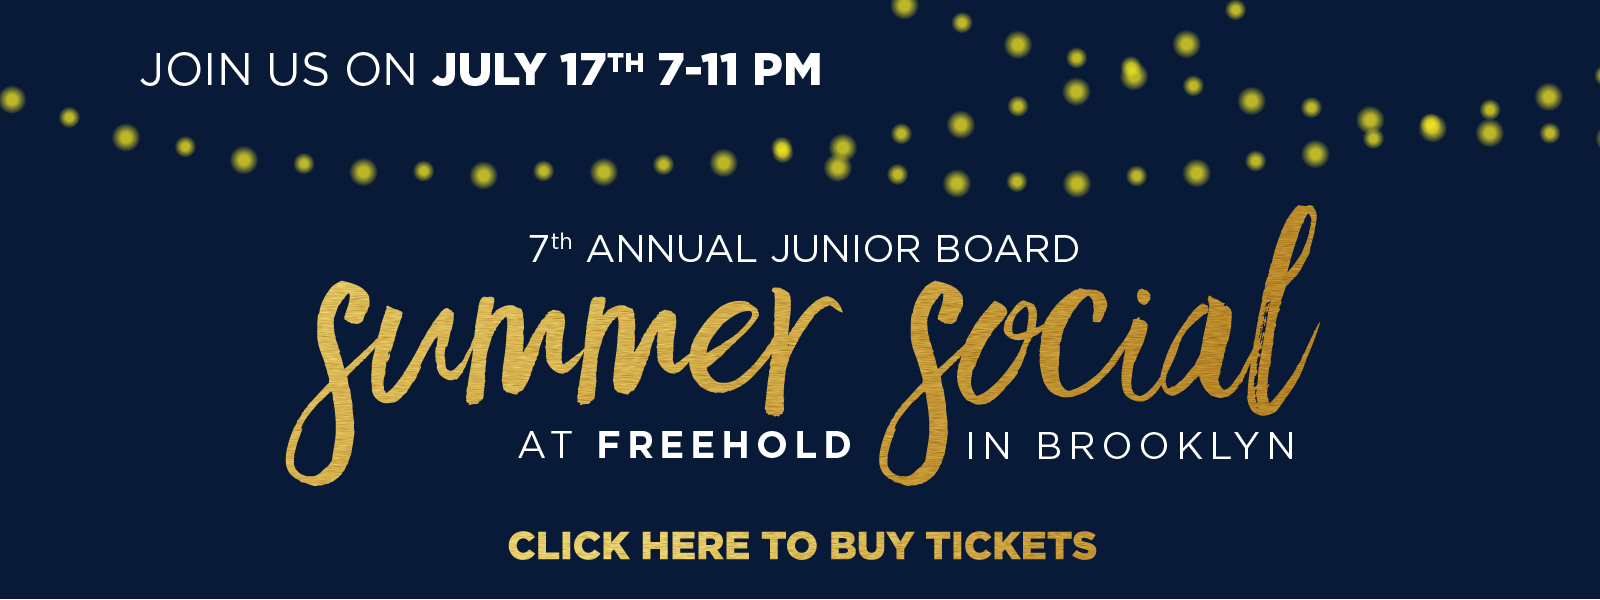 7th annual junior board summer social